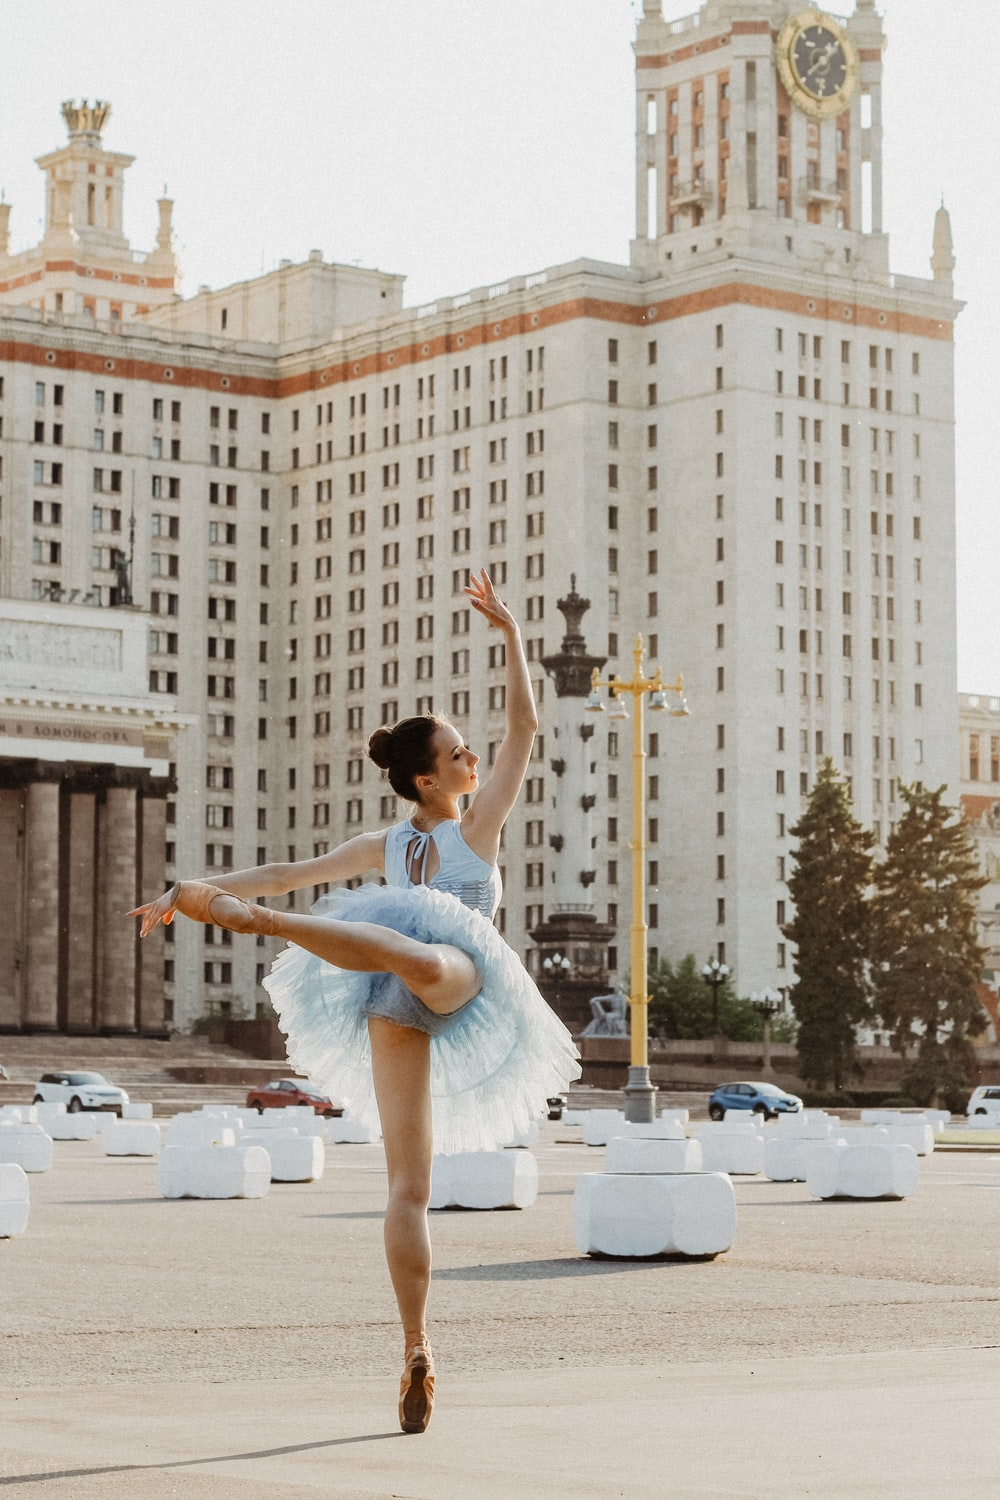 ballerina dancing near white concrete building during daytime